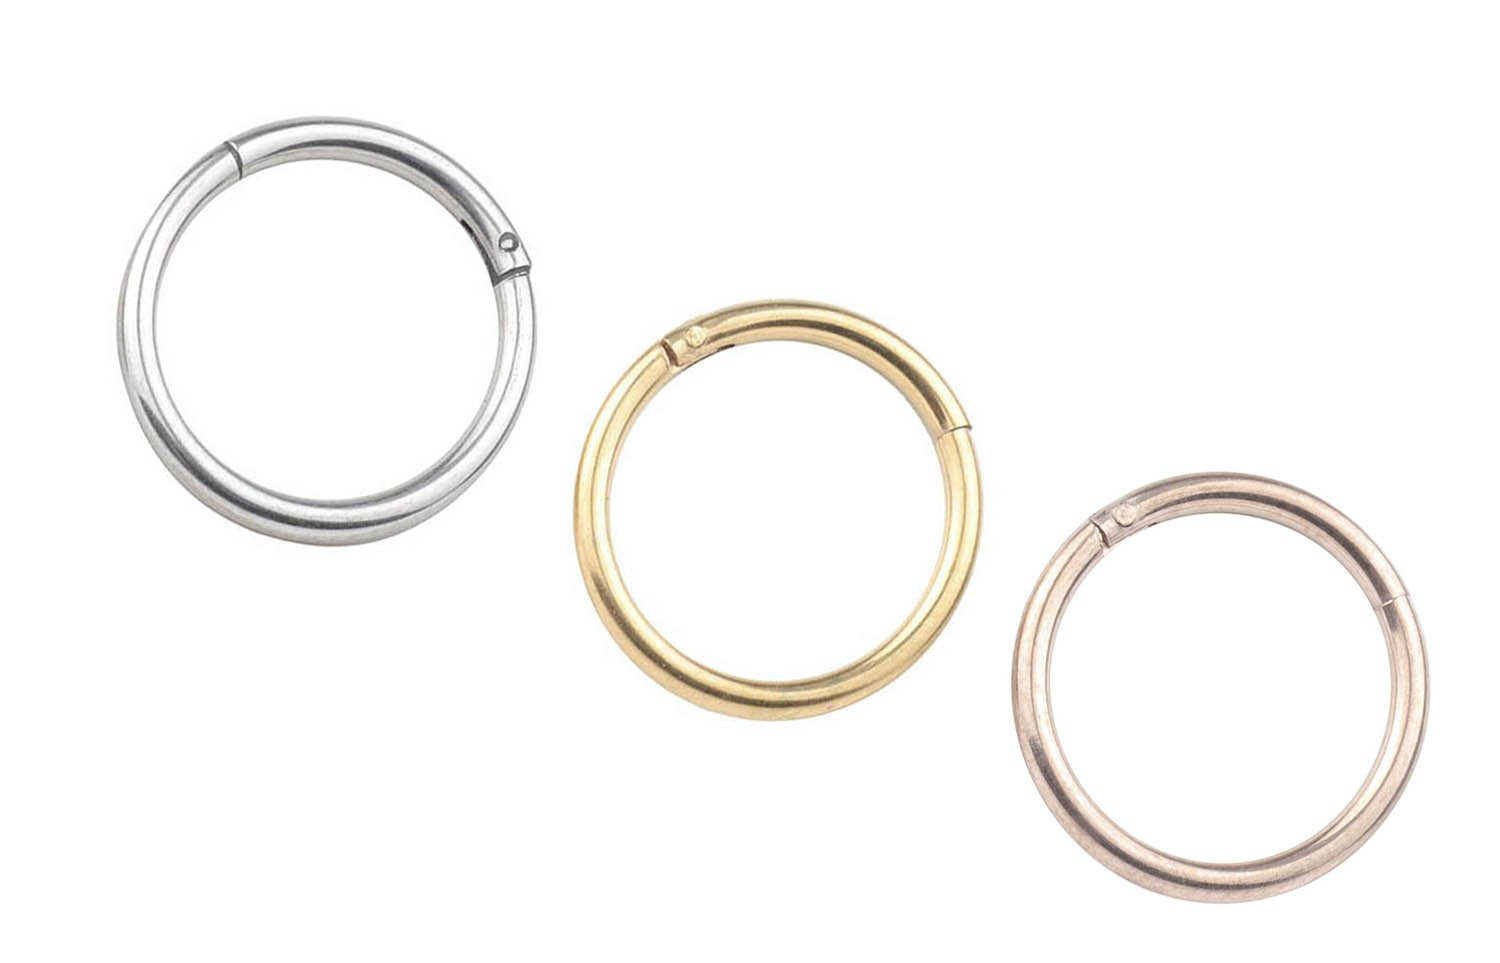 FB 16G 316L Stainless Steel Seamless Nose Ring Hoop Hinged Body Piercing Earring Hoop Clicker Ring……